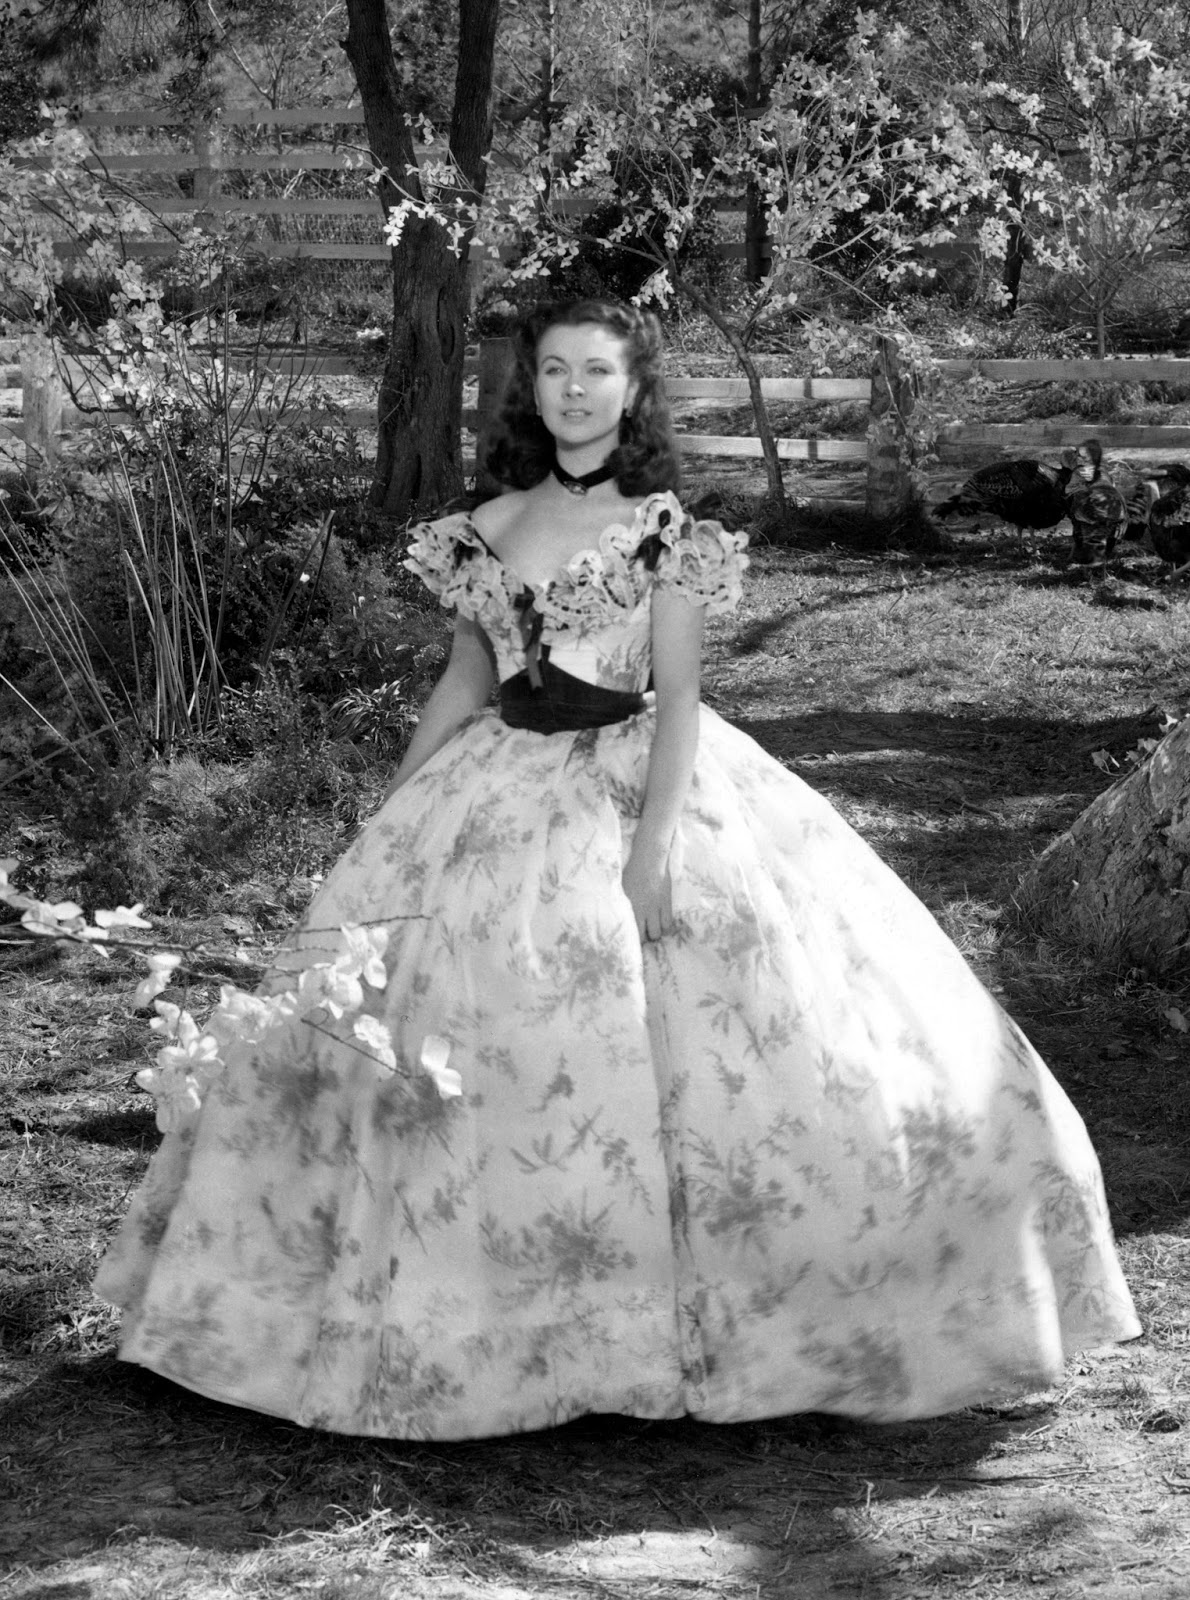 The costumes of gone with wind scarlett s barbecue dress